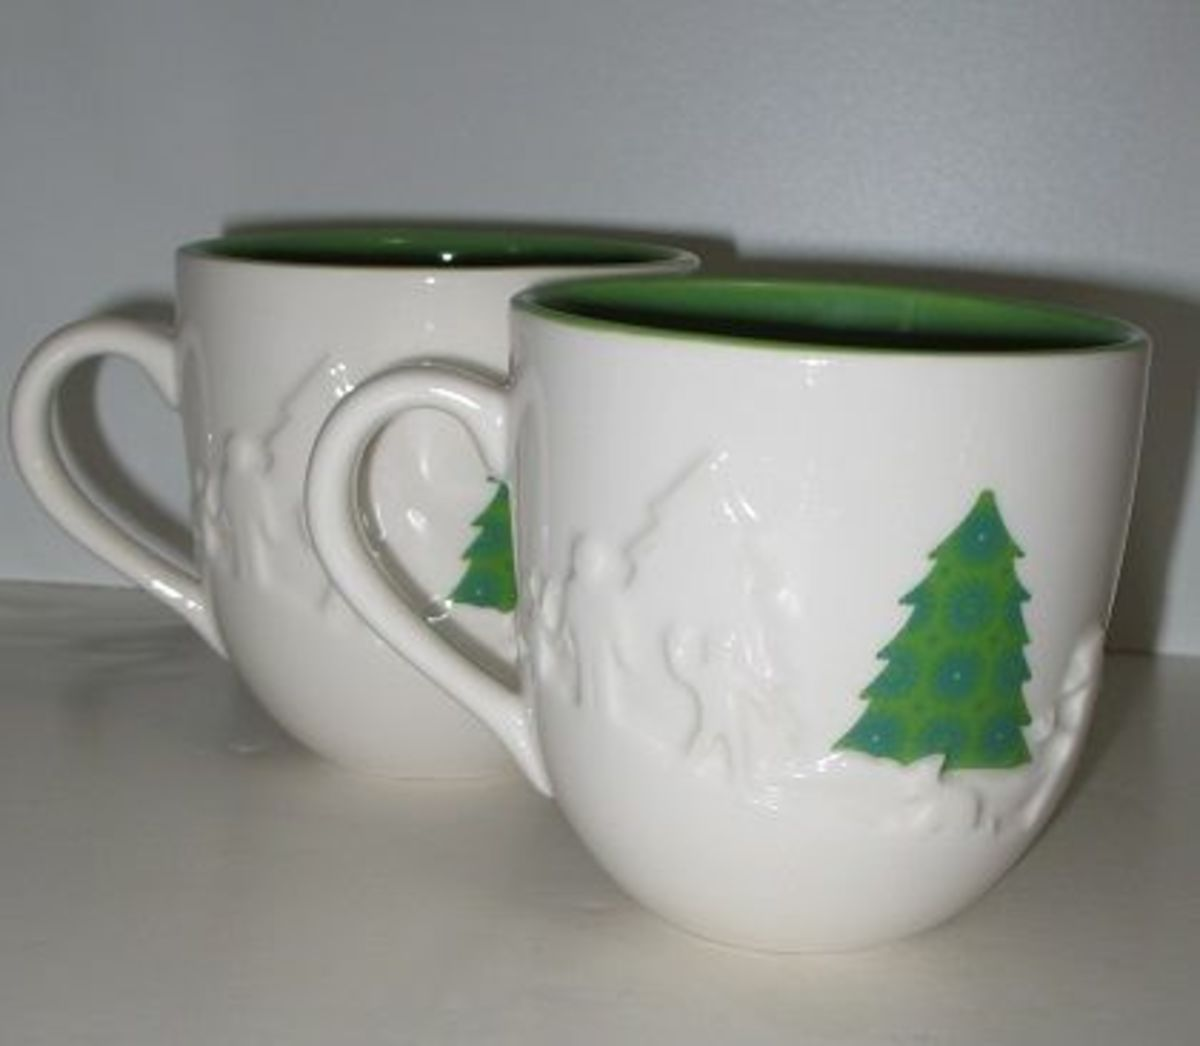 Starbucks 2006 Christmas Coffee Mug